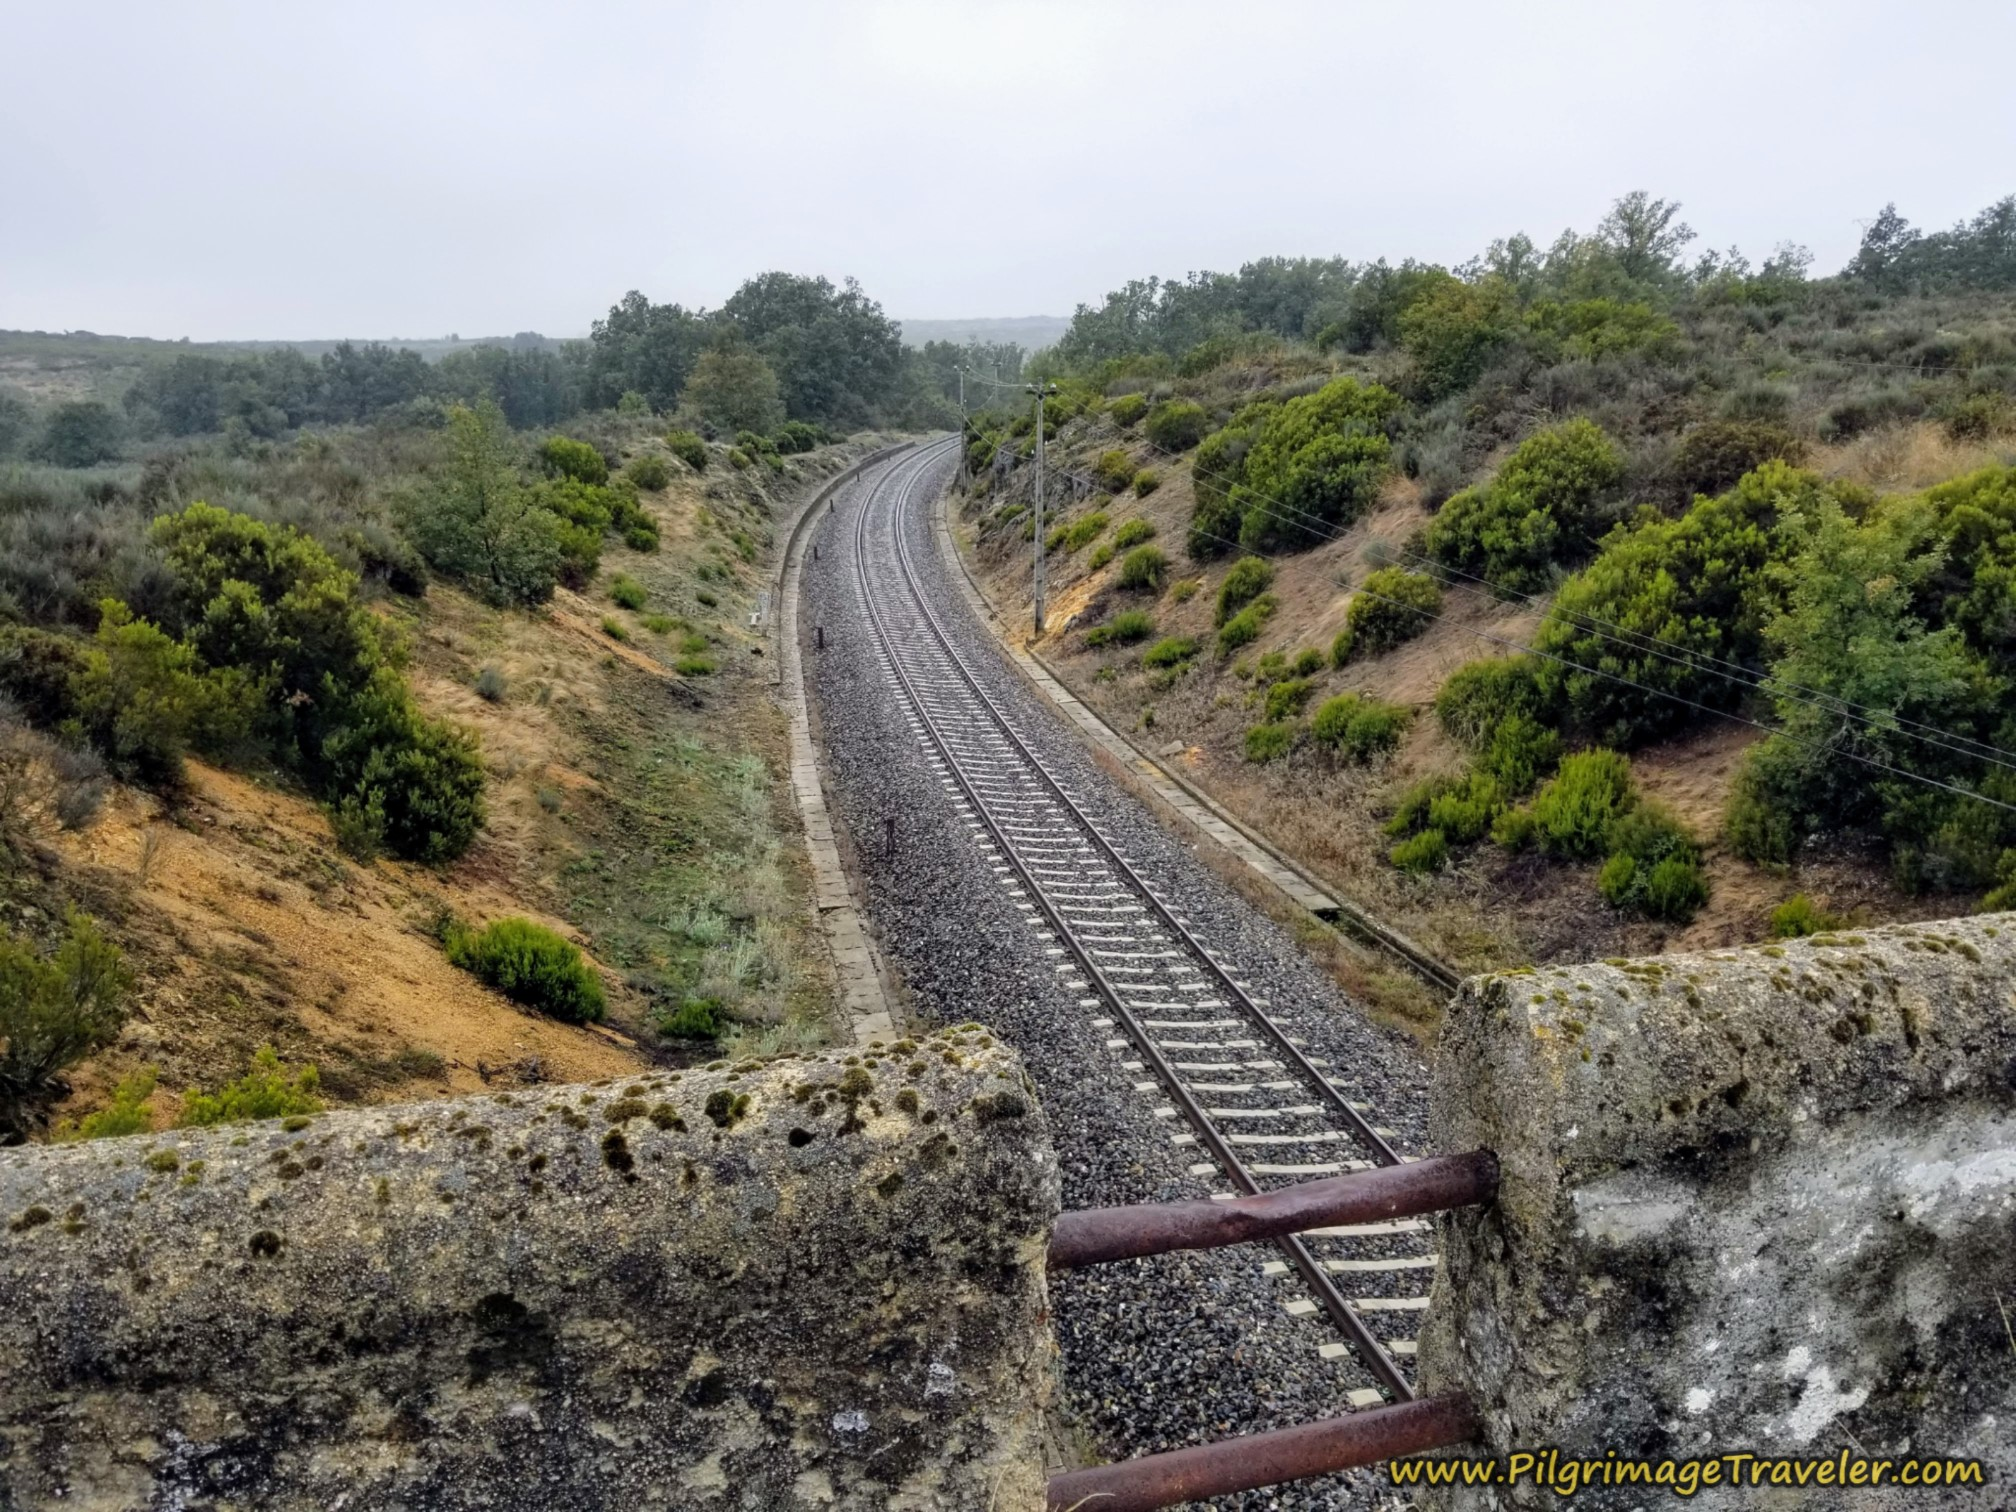 Cross Railroad Tracks on the OU-0953